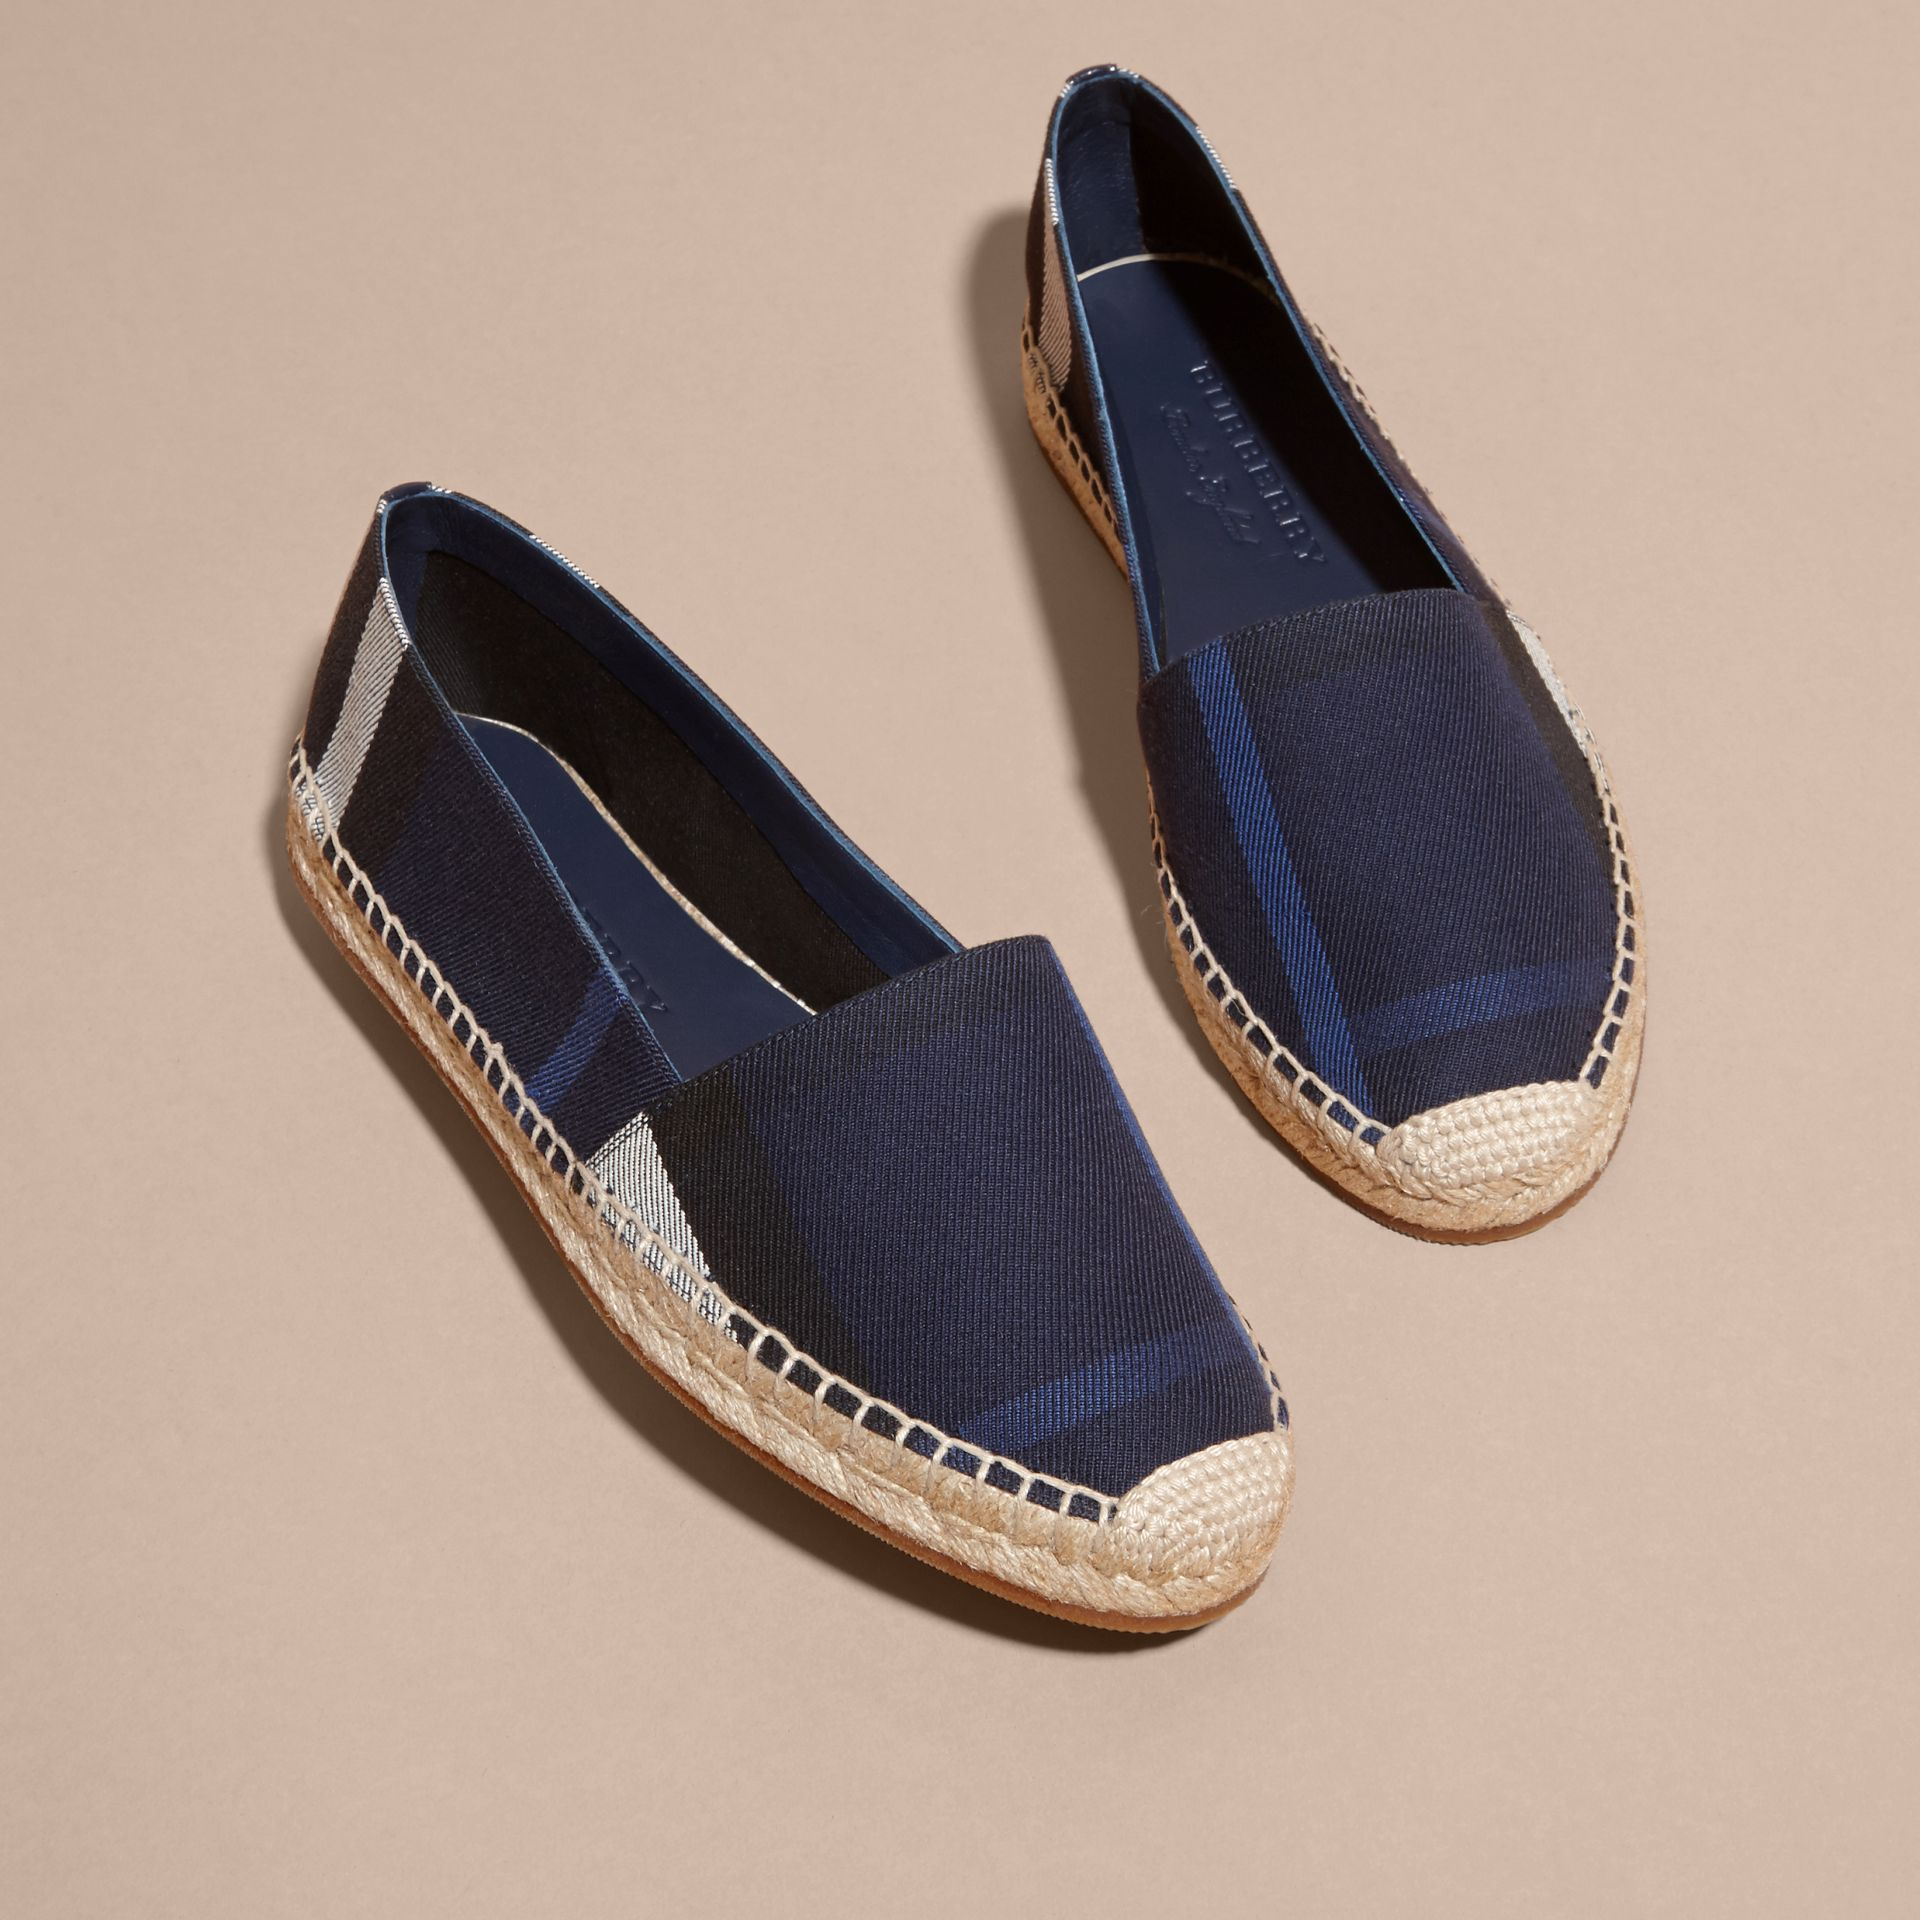 Leather Trim Canvas Check Espadrilles in Indigo Blue - Women | Burberry - gallery image 3